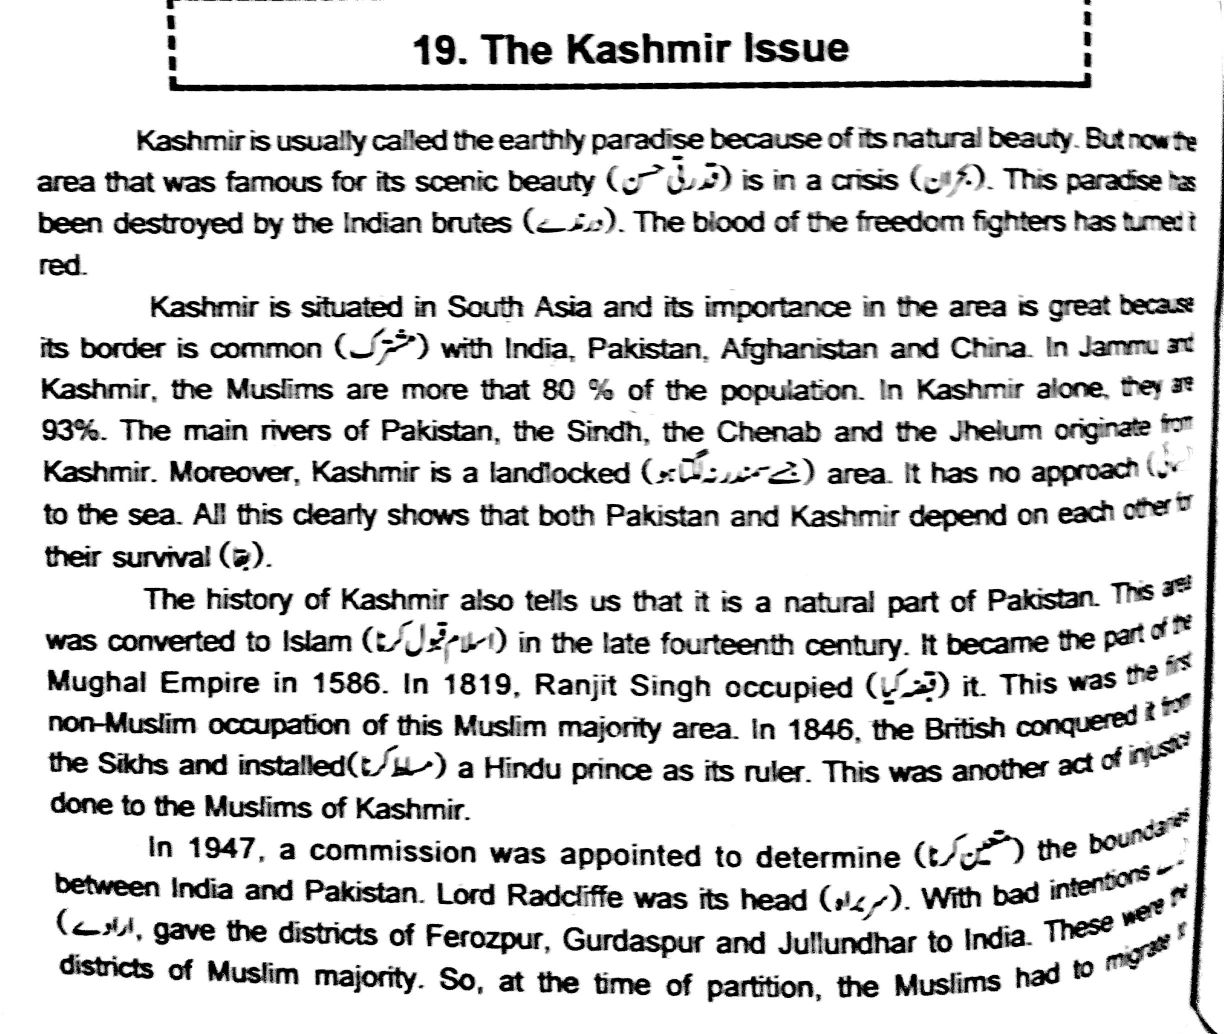 essay on kashmir the kashmir issue essay in english for students honey notes